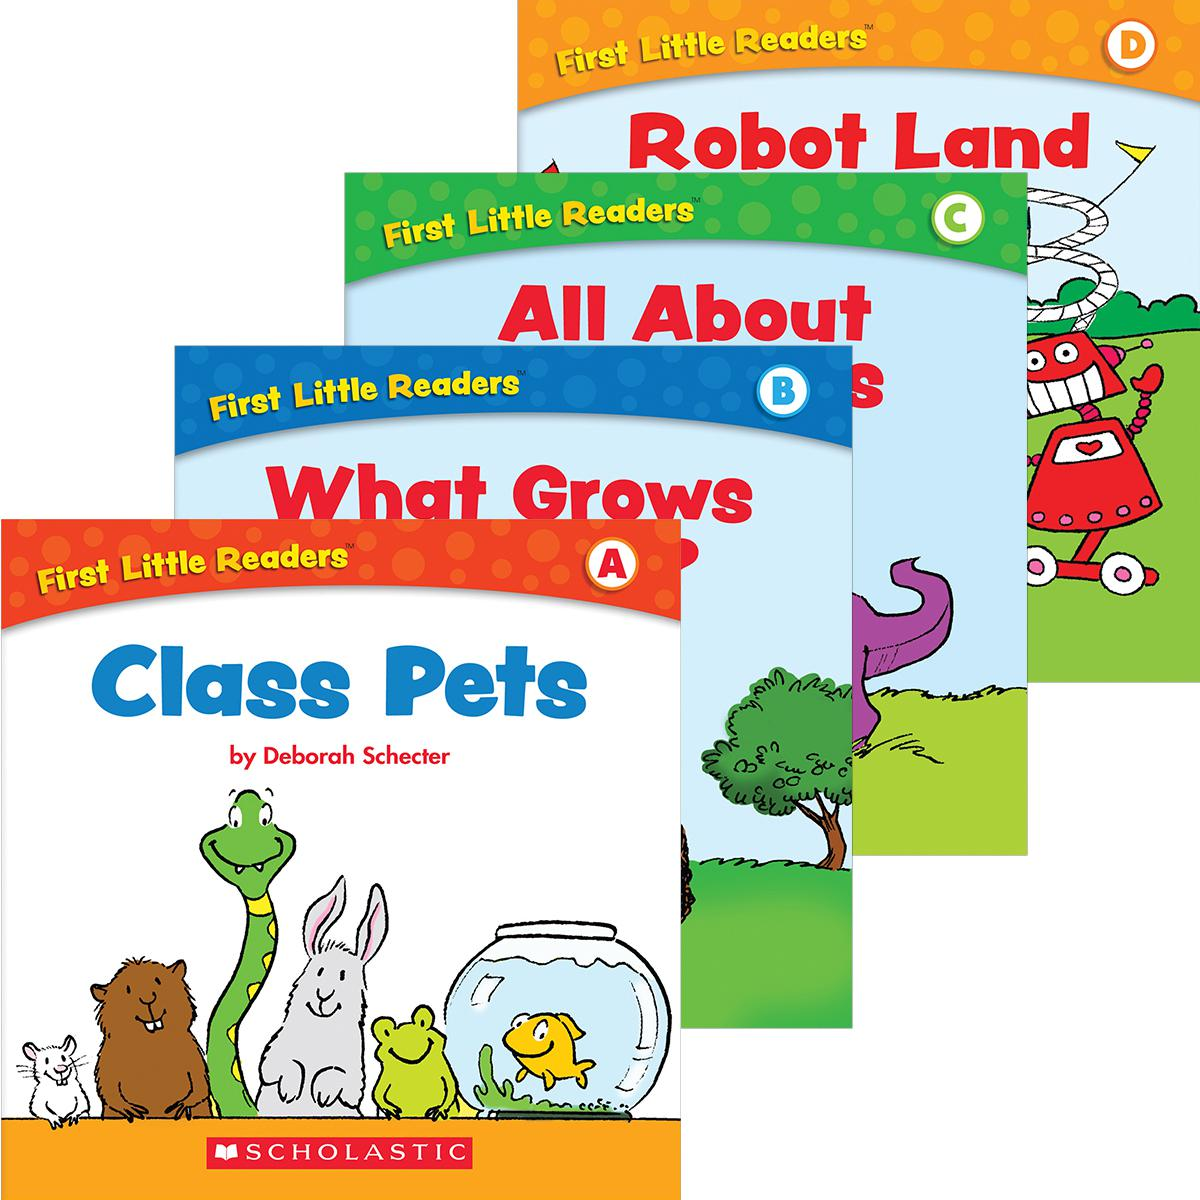 First Little Readers Value Pack (A-D)